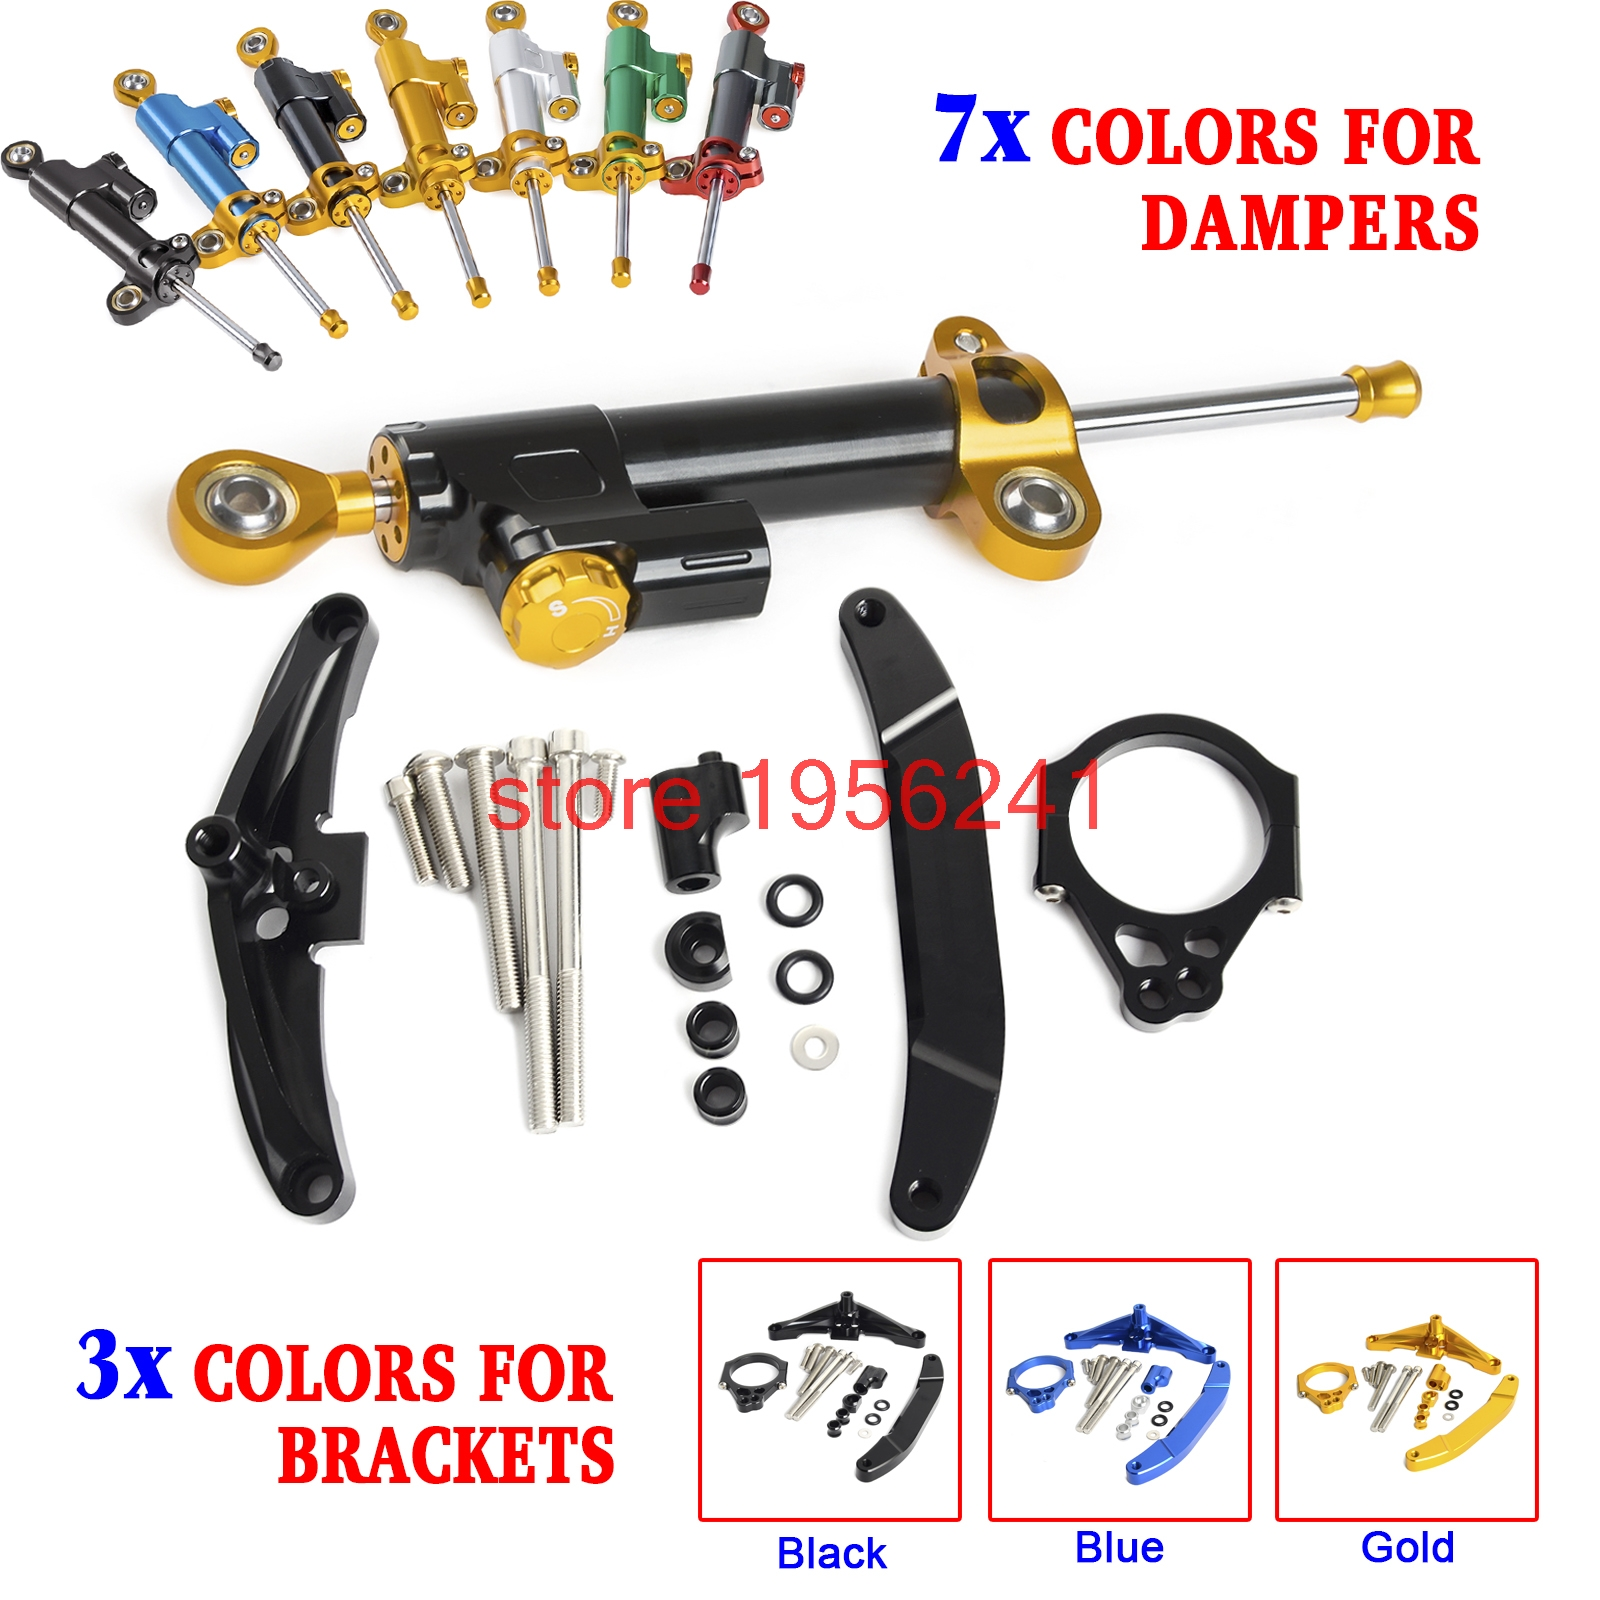 Motorcycle Steering Damper Mounting Bracket Kit For Yamaha FZ1 Fazer 2006 2015 2007 2008 2009 2010